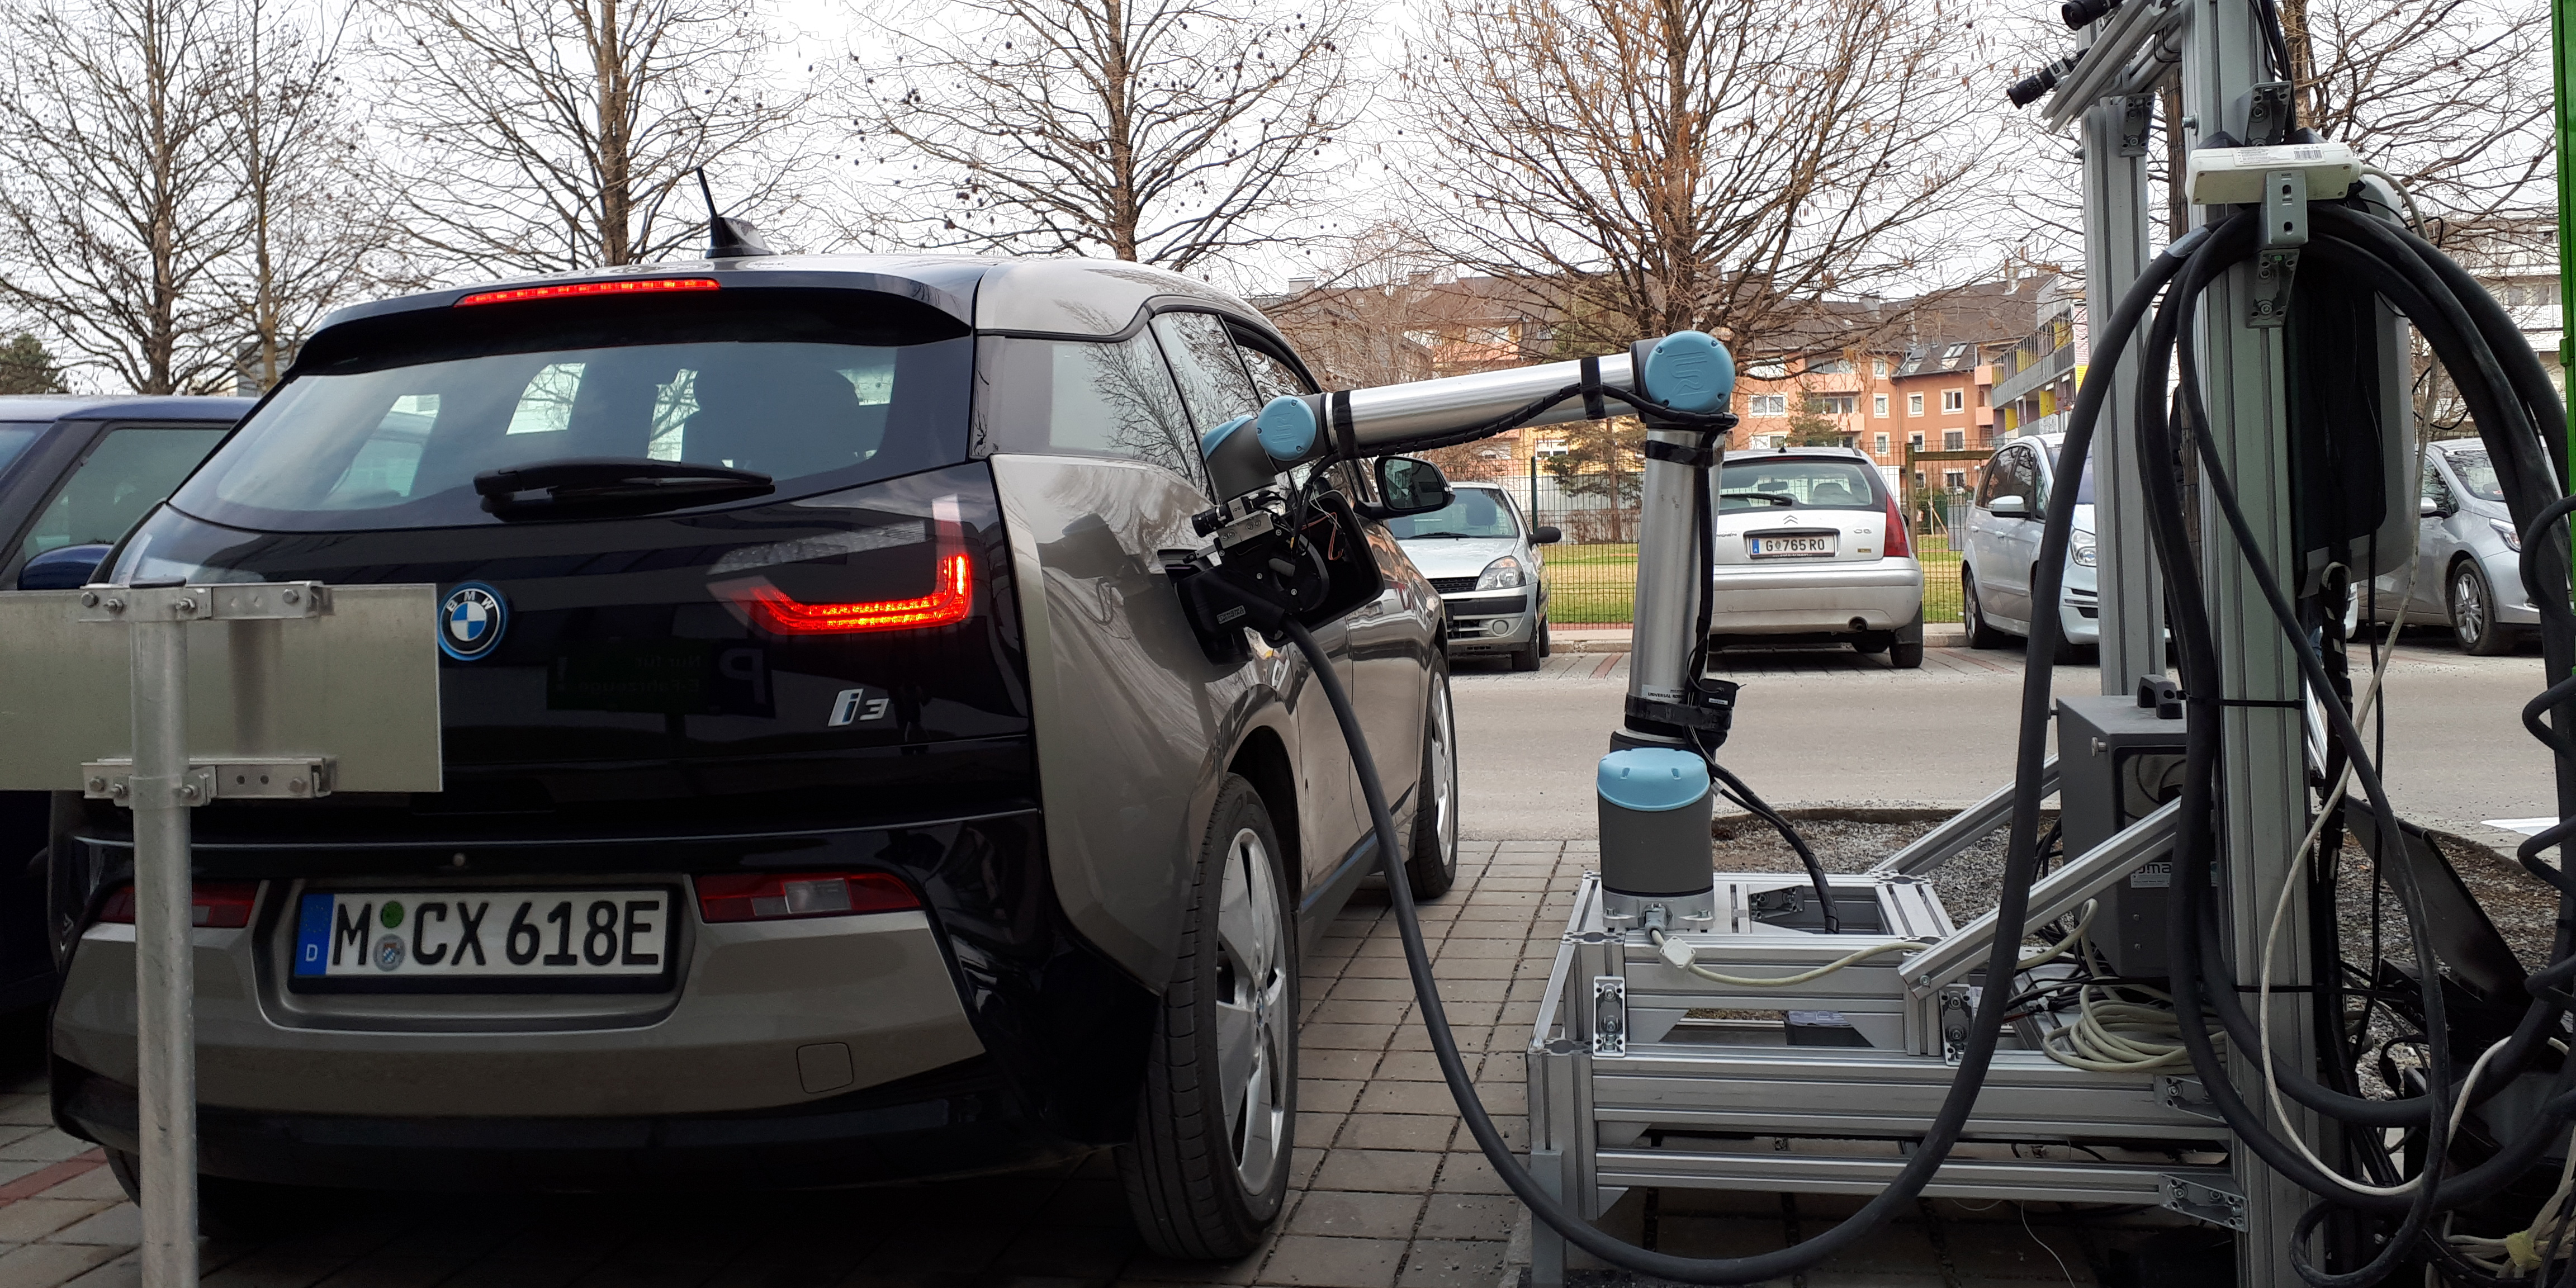 Here's a real robot electric car fast-charging station like the one Tesla has been promising for years